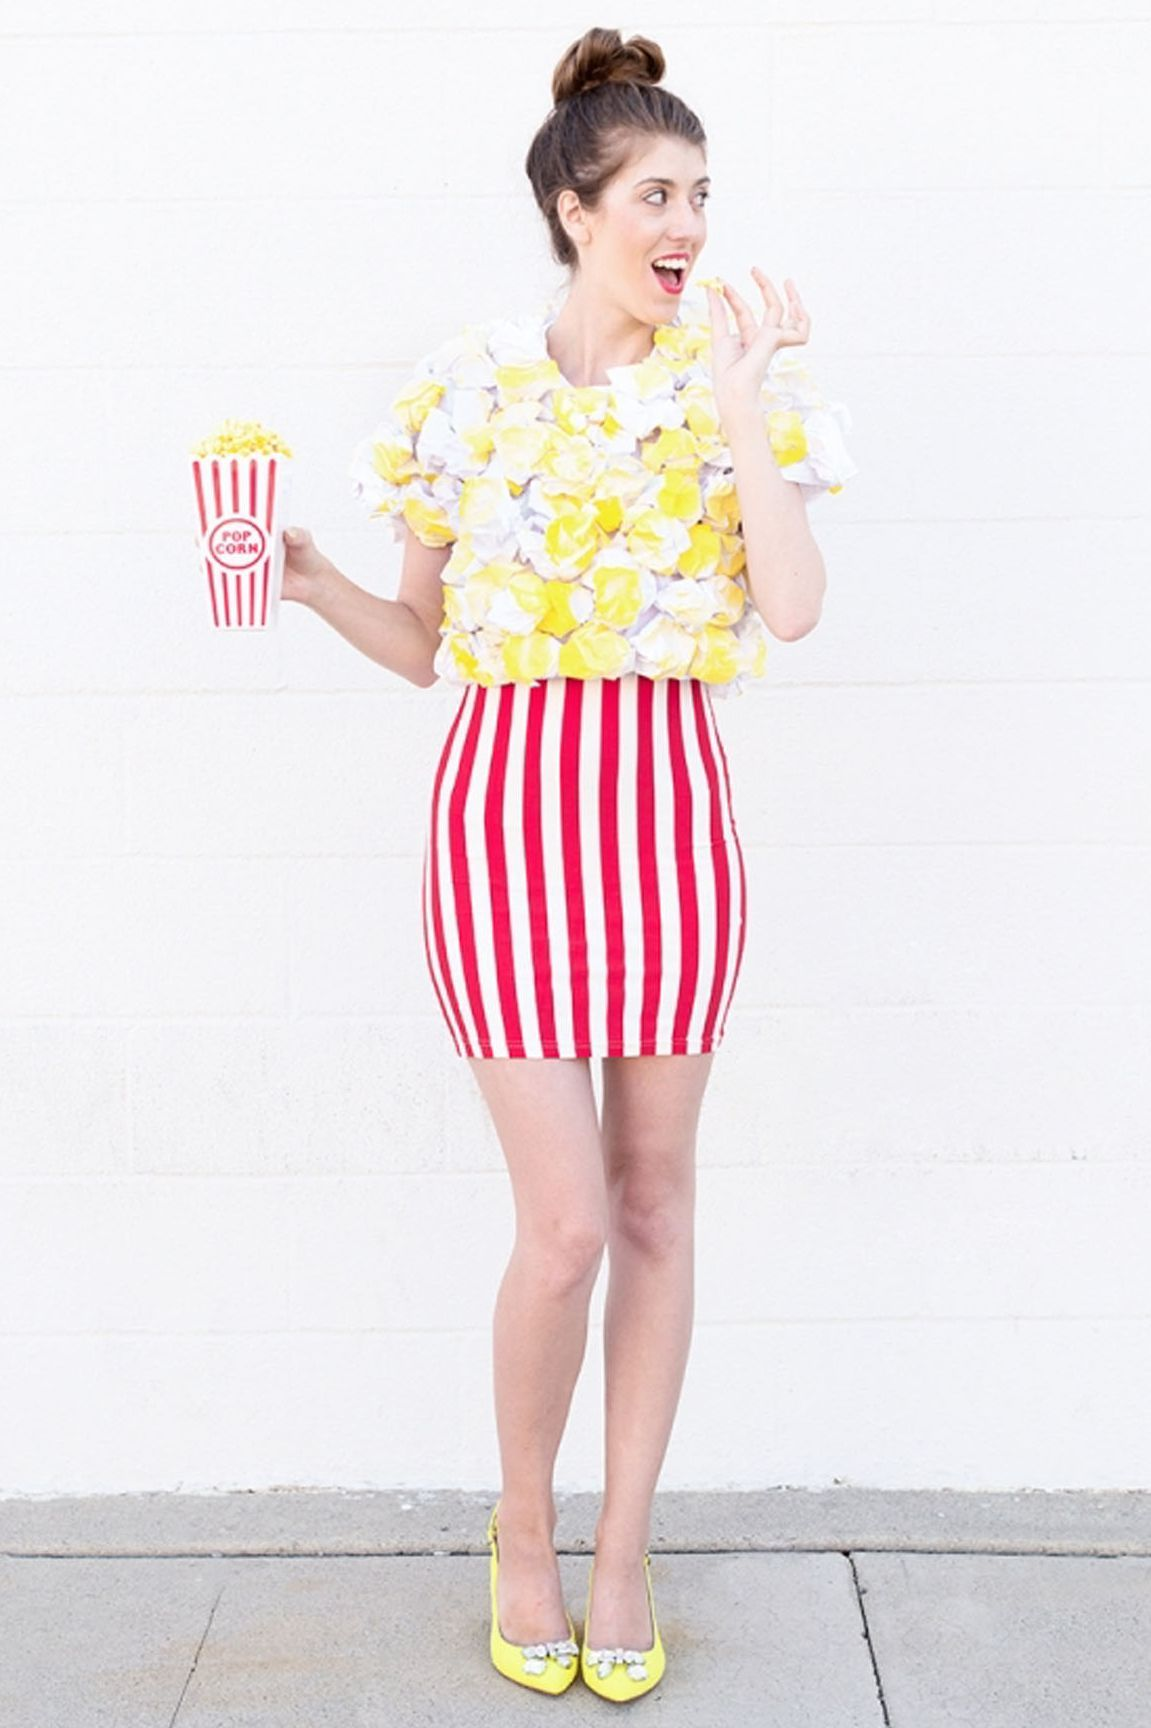 Do It Yourself Halloween Costumes For Adults.Procrastinators These Last Minute Halloween Costume Ideas Are Just For You Diy Halloween Costumes Easy Halloween Costumes Women Creative Popcorn Halloween Costume